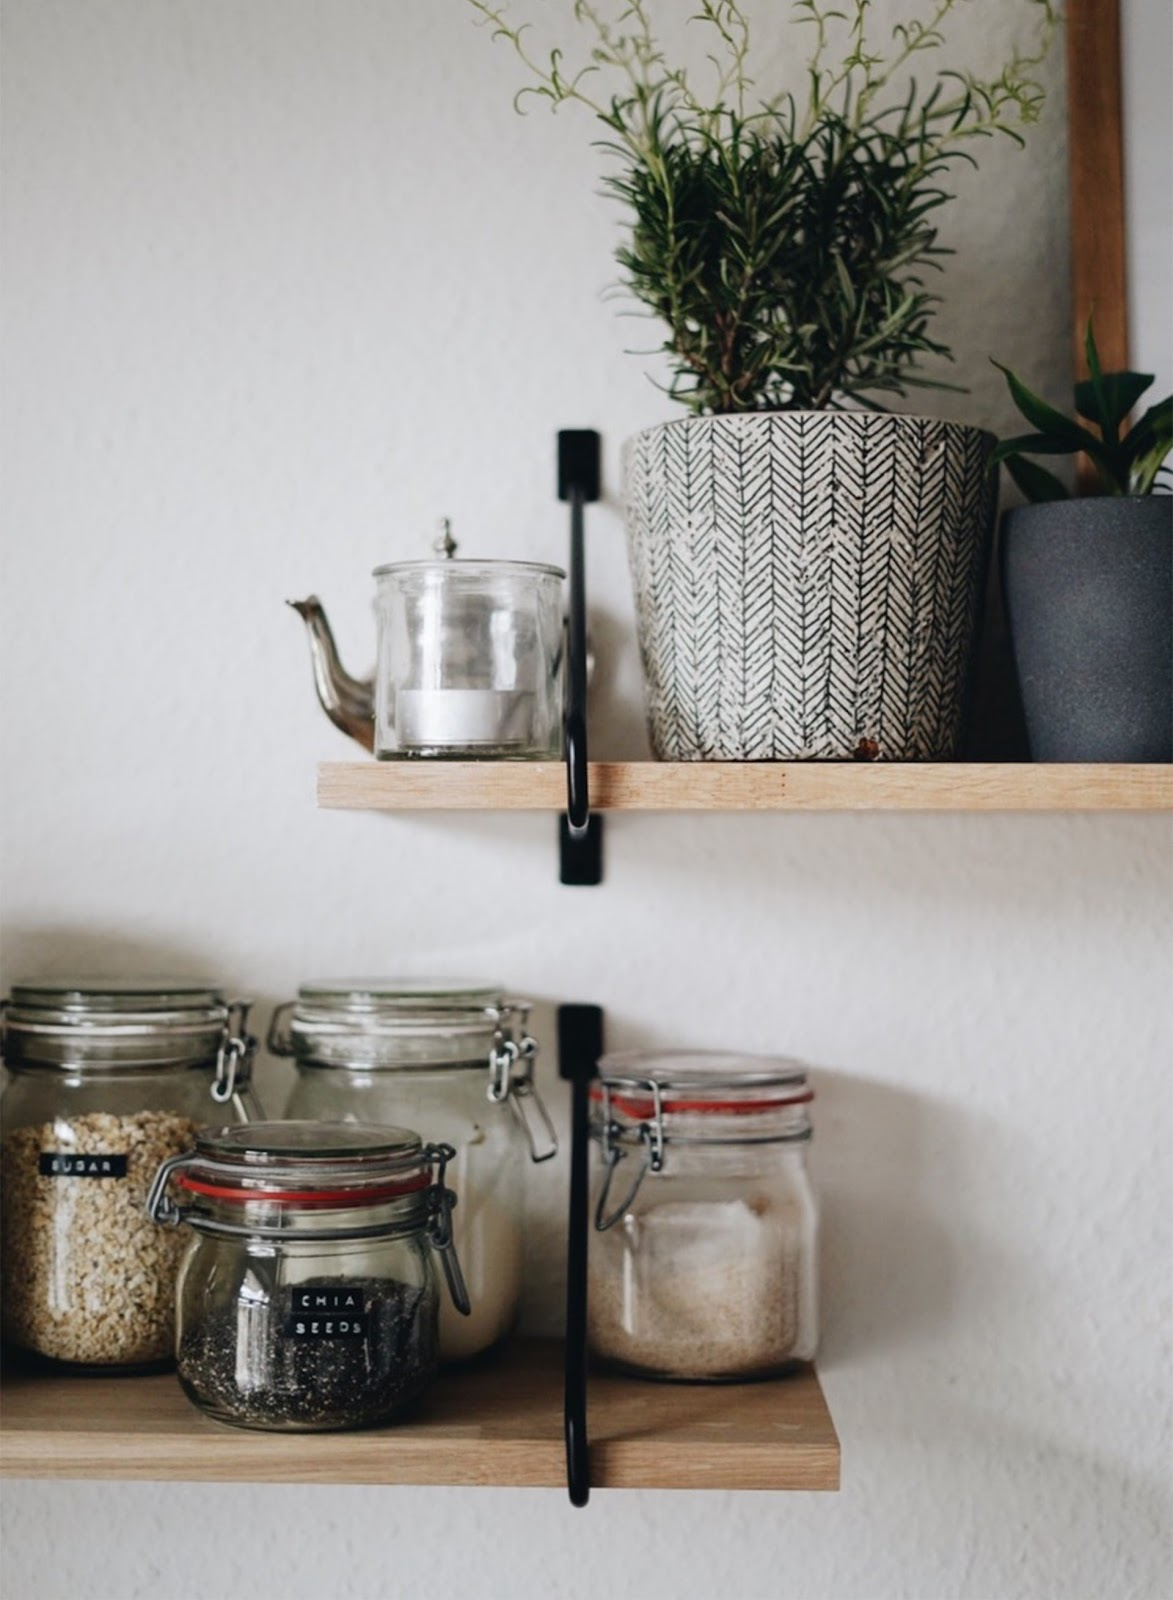 Succulents stacked alongside jars on the open shelf rack in the kitchen representing how you can integrate natural elements in your kitchen